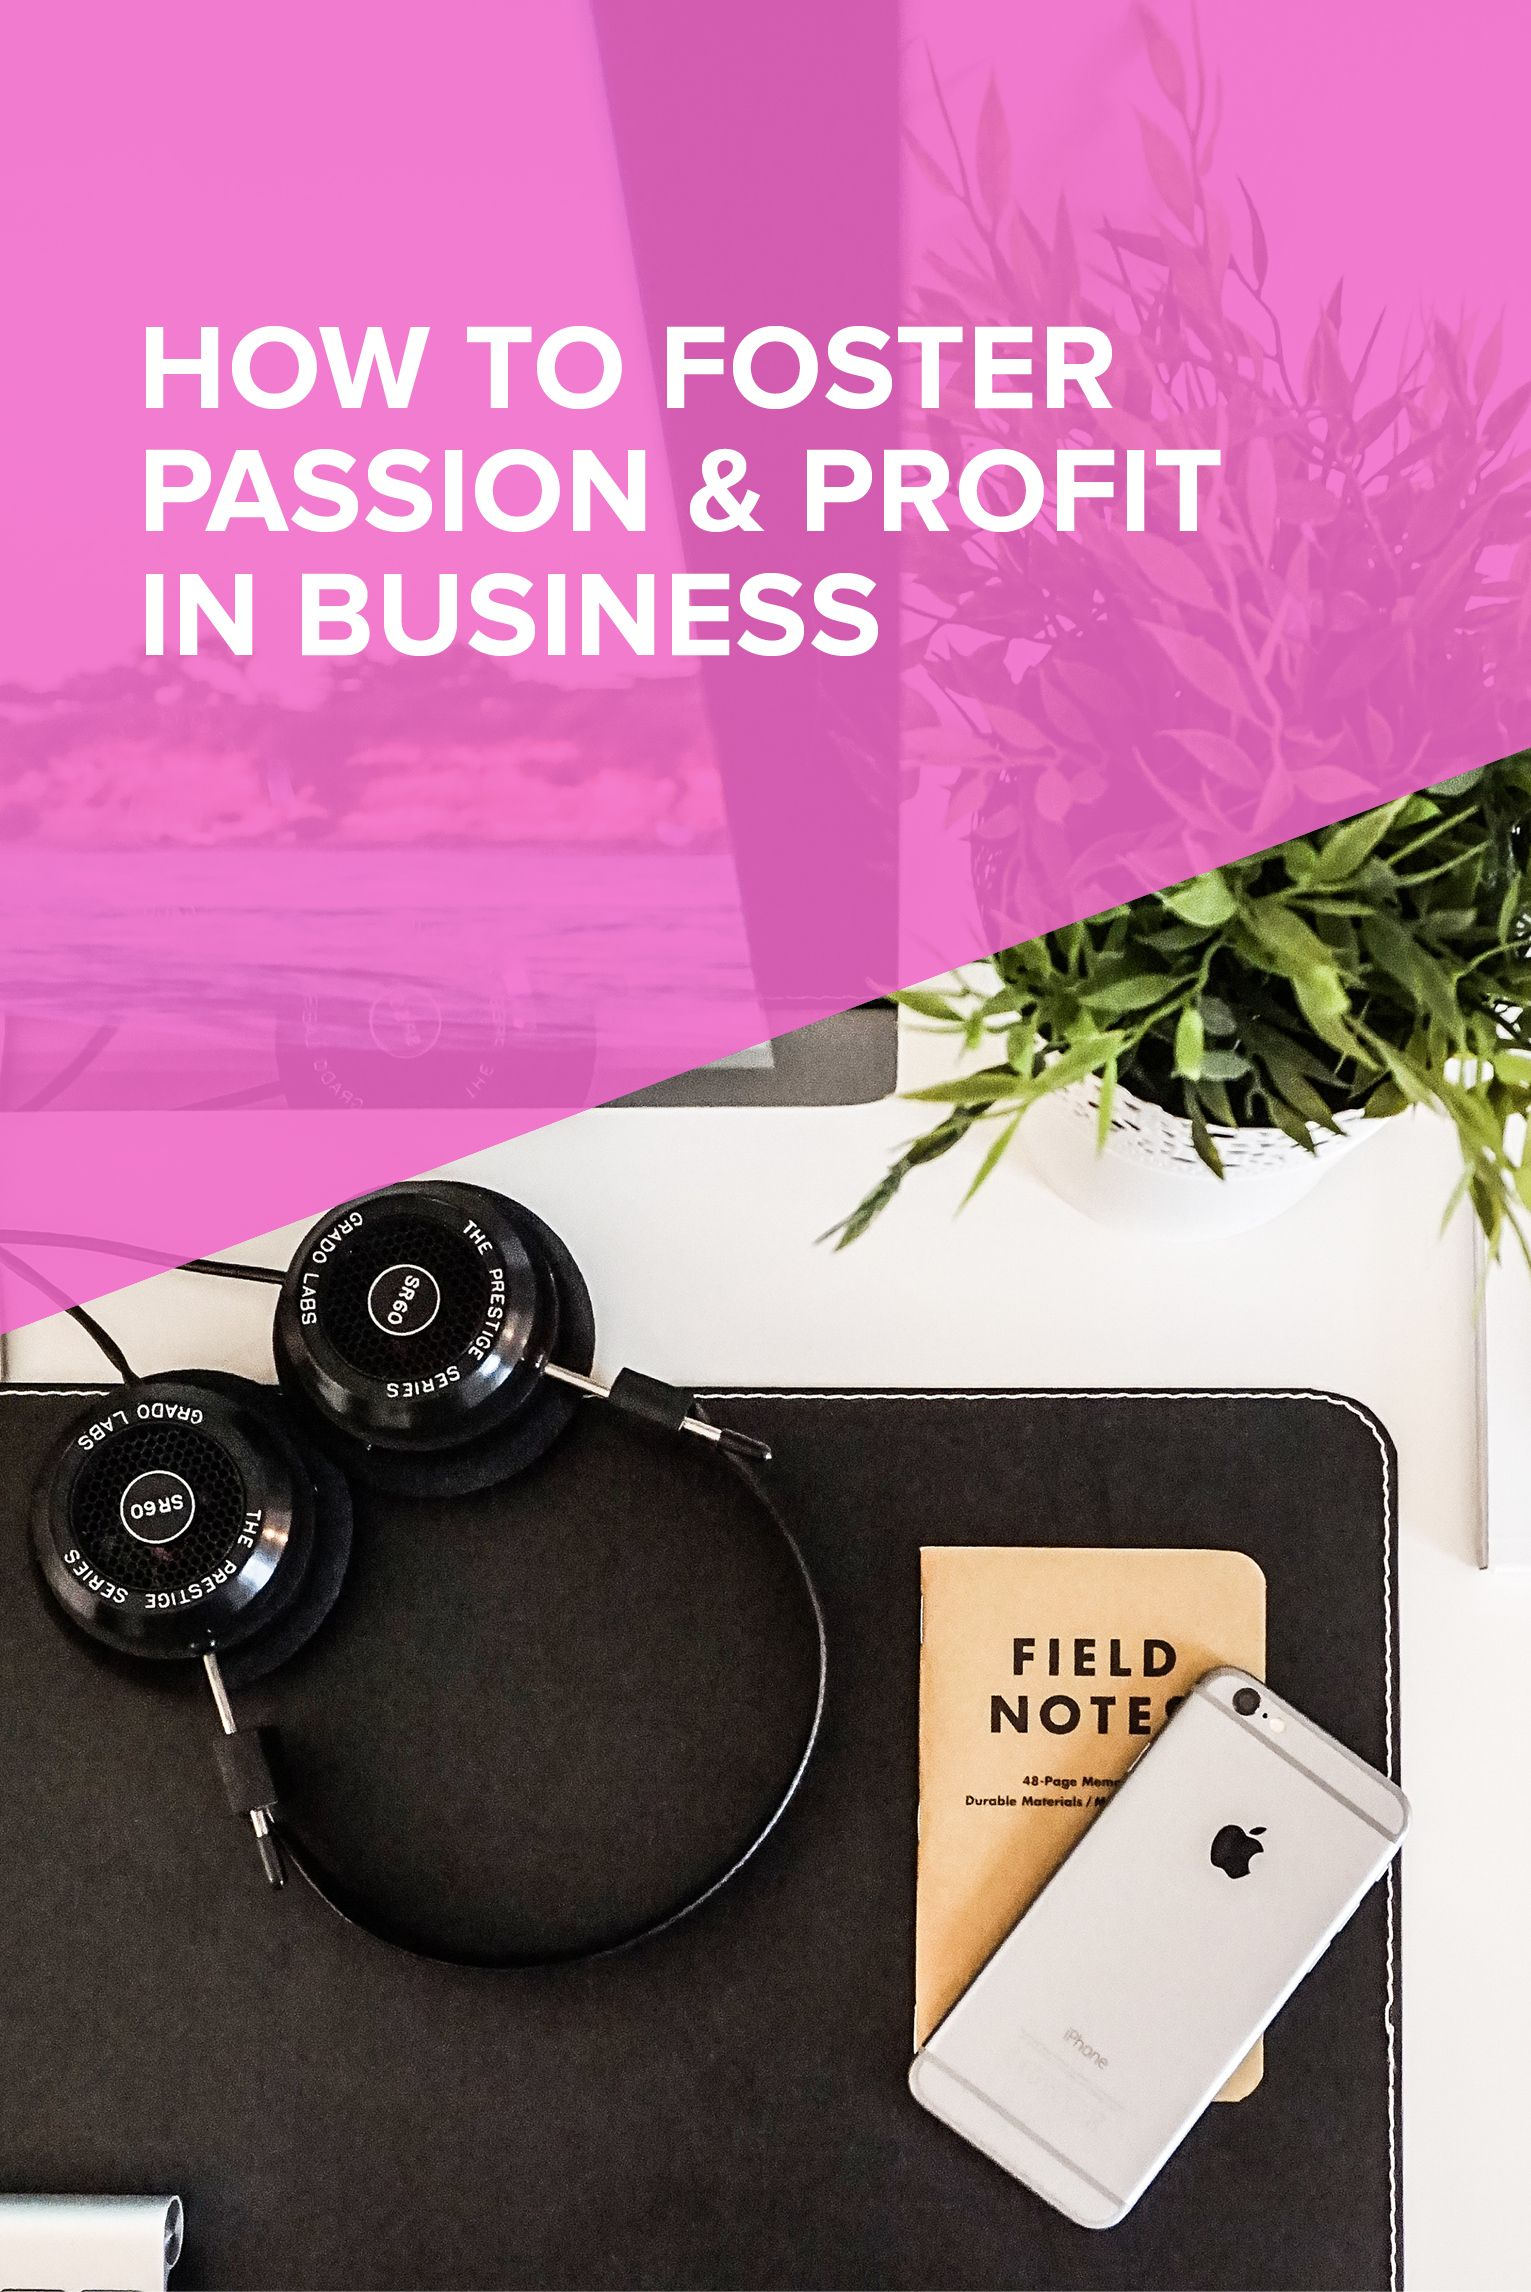 How to Foster Passion & Profit in Business